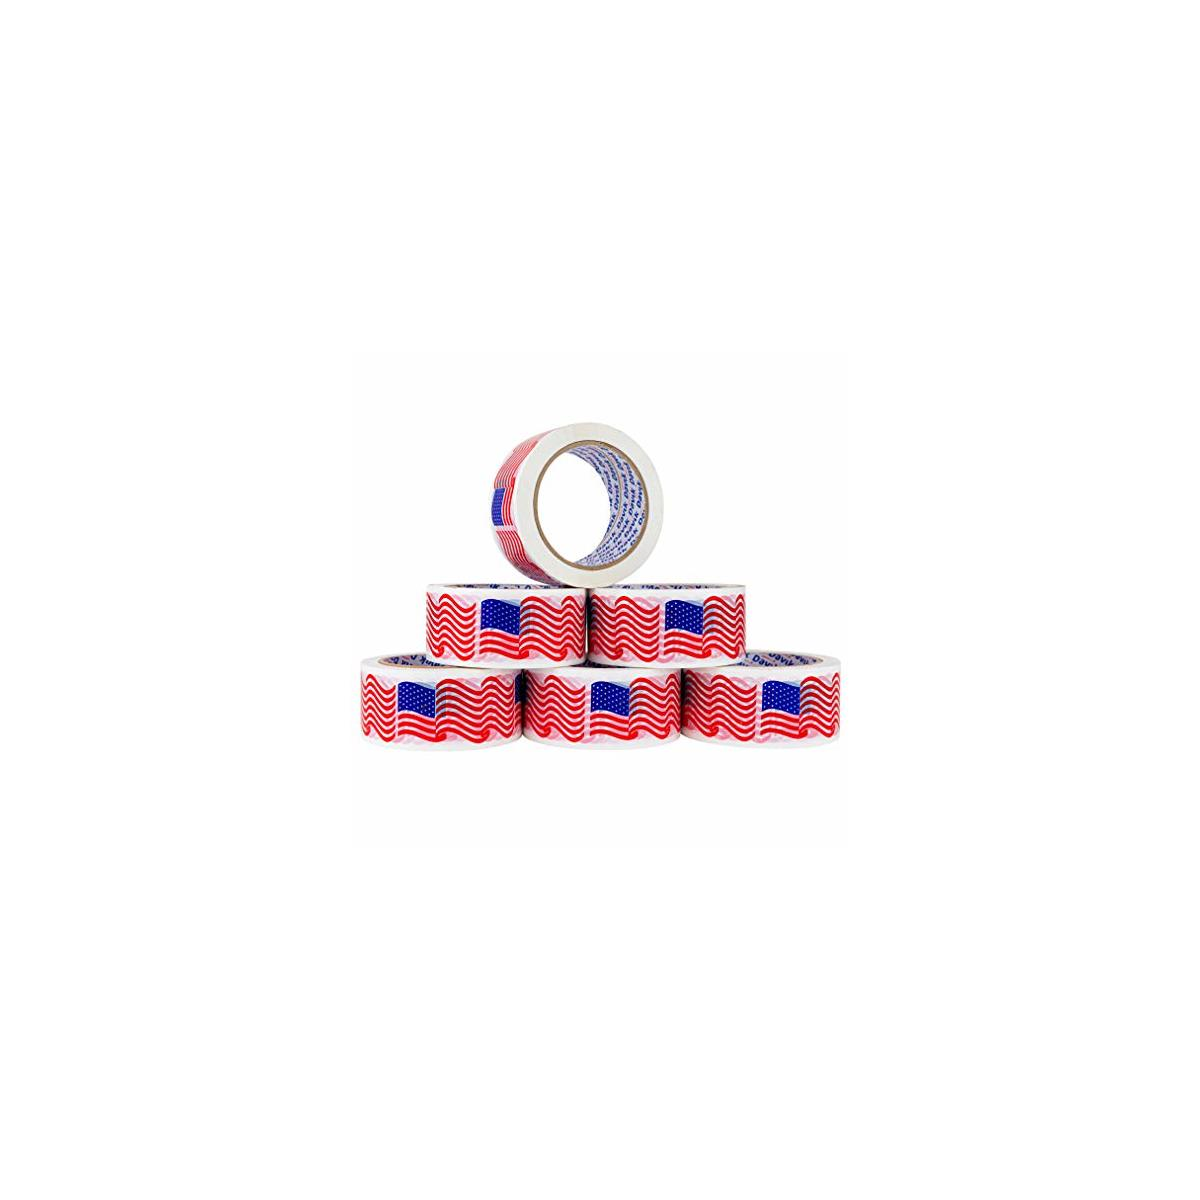 Davik USA Flag Printed Packaging Tape 6-Pack: 6 American Flags 216-Feet 1.88-Inch Permanent Designer Crafting Rolls for Shipping, Sealing, and More